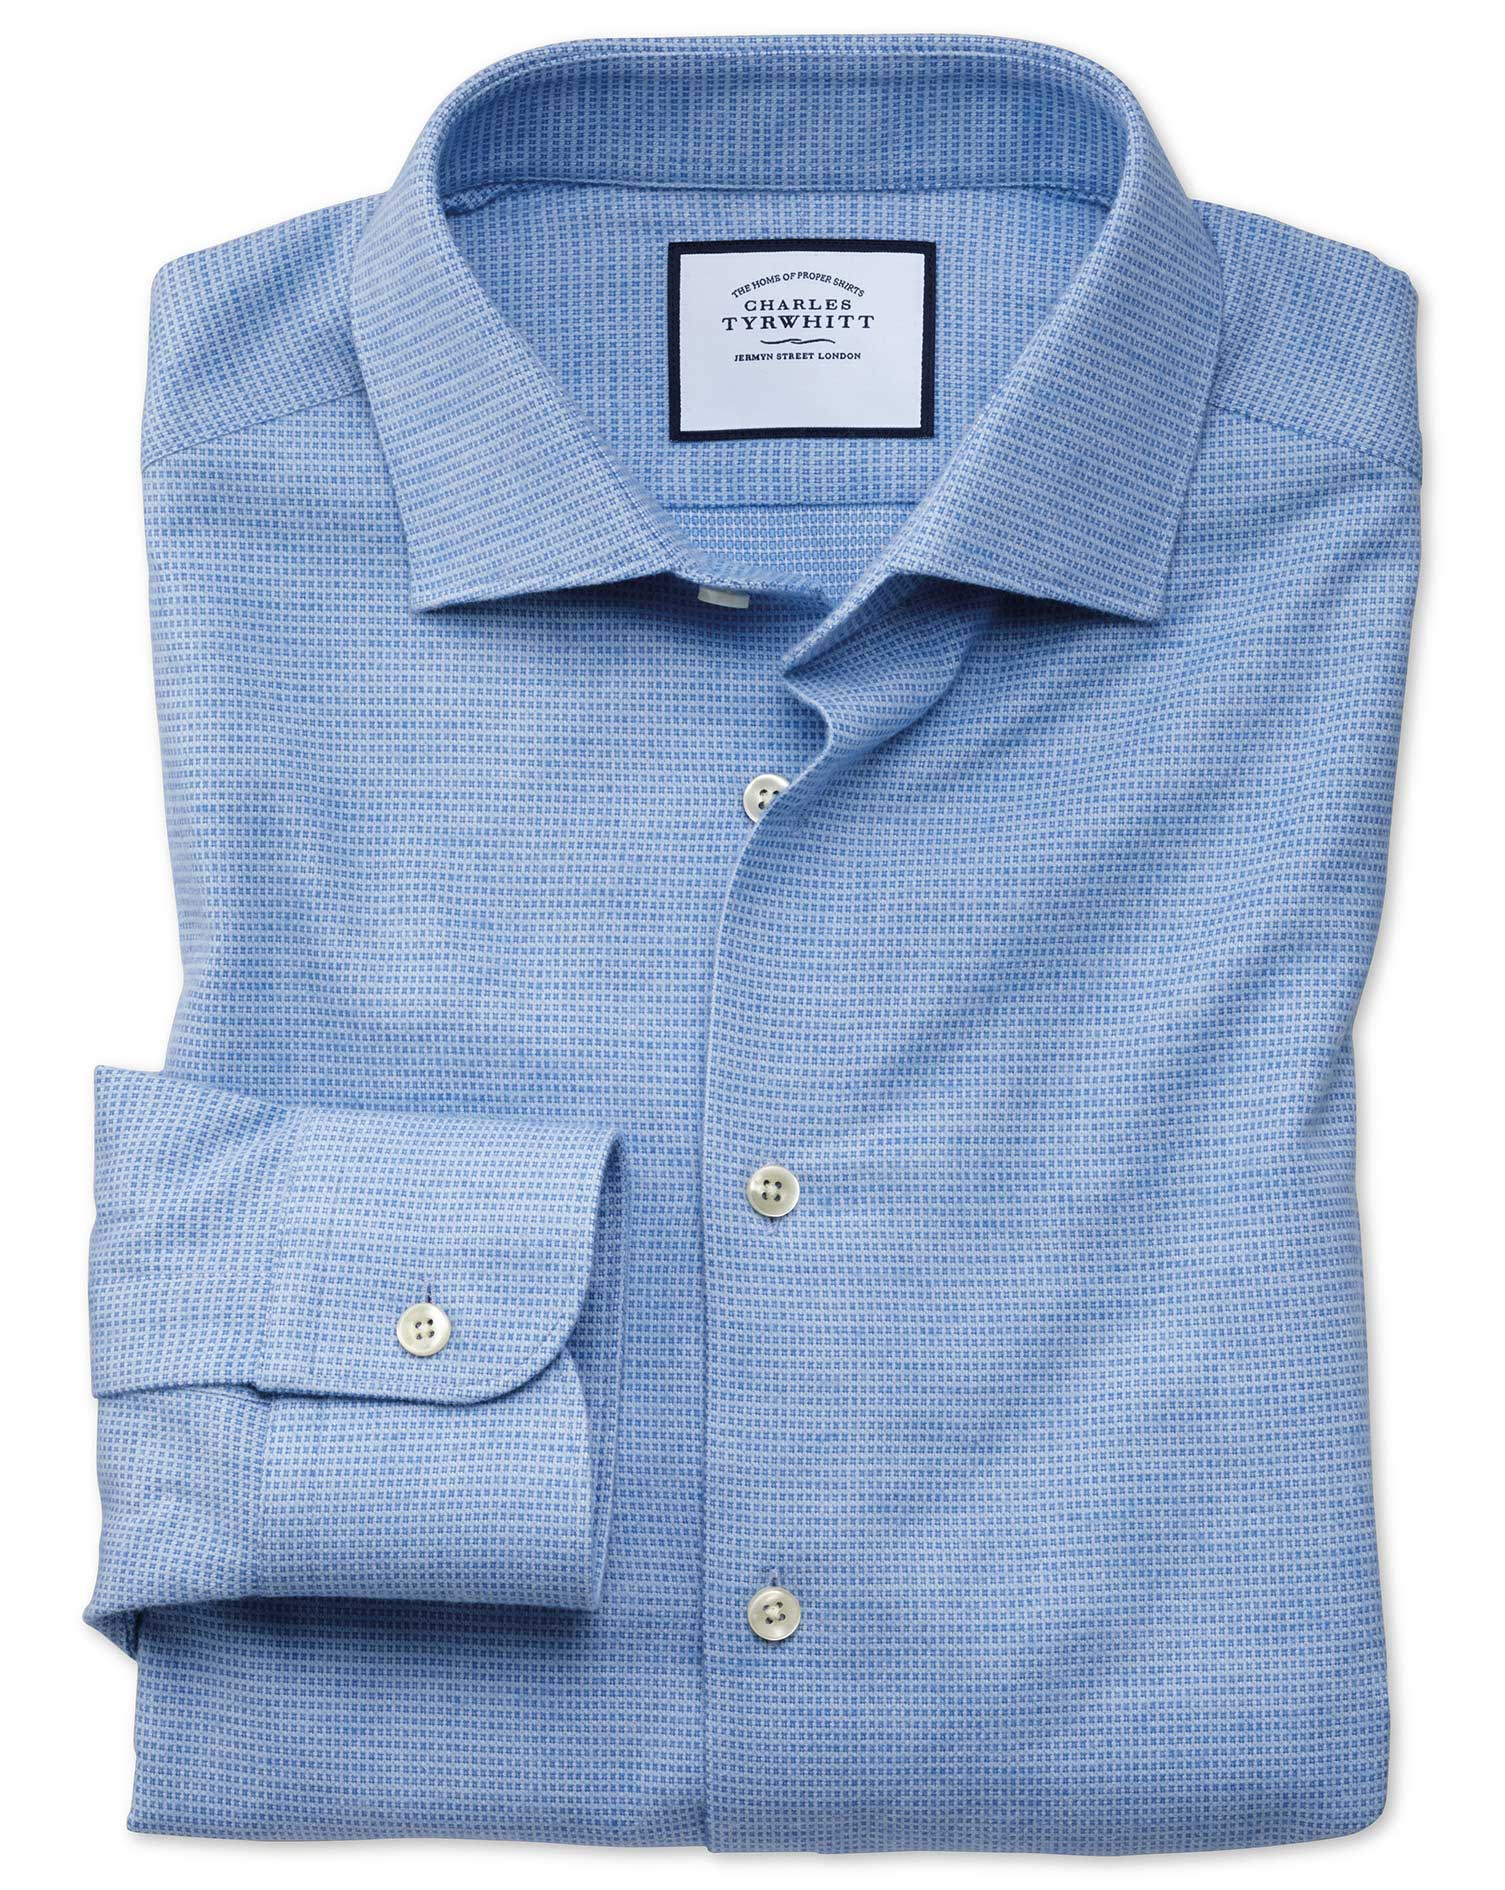 Extra Slim Fit Business Casual Sky Blue Square Pattern Soft Cotton Formal Shirt Single Cuff Size 16.